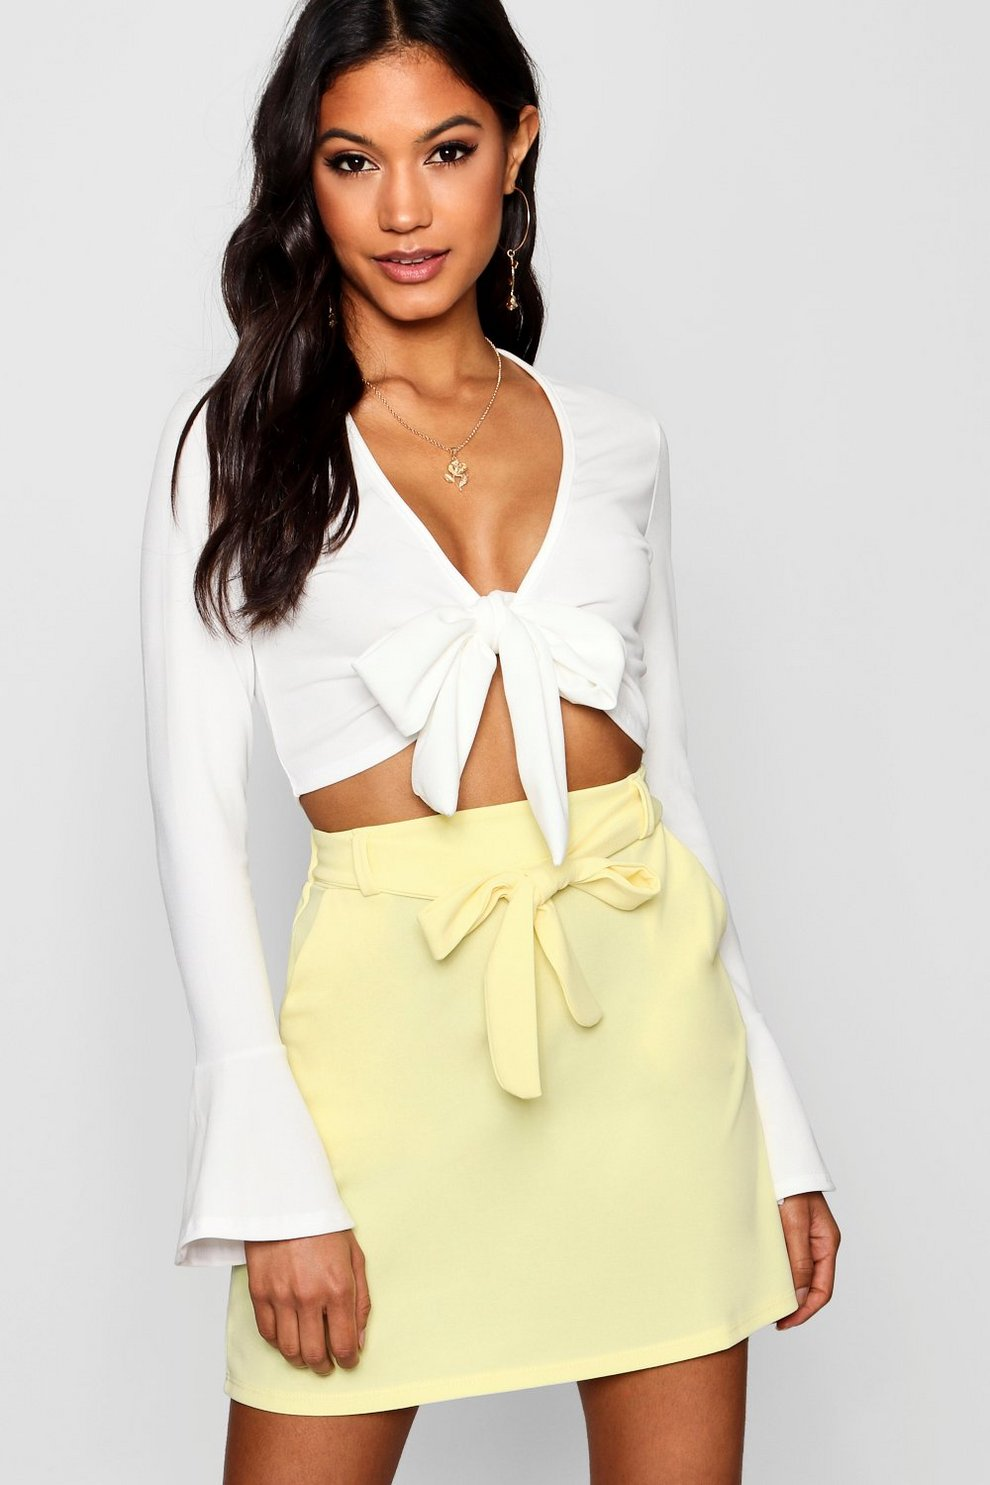 Boohoo Tie Waist Pocket Front Mini Skirt Sale Outlet Store Hot Sale Online Z4B2i9Lc